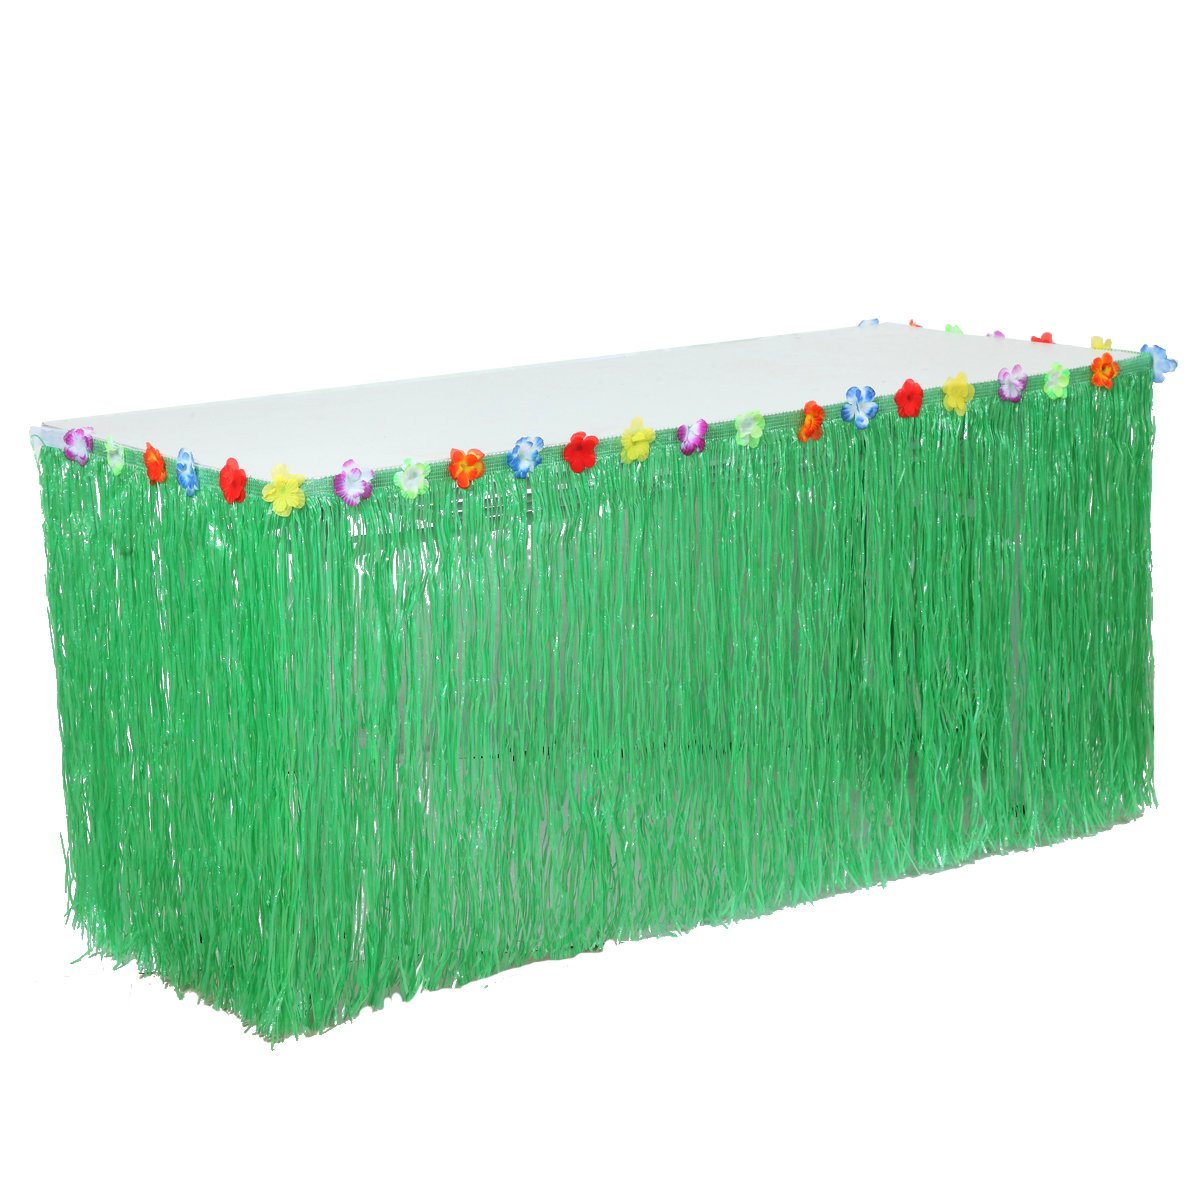 Suppromo 9ft Green Grass Table Skirt Hawaiian Luau Table Skirt with Hibiscus Leis Silk Flower for Luau Party Supplies,Raffia Table Skirt